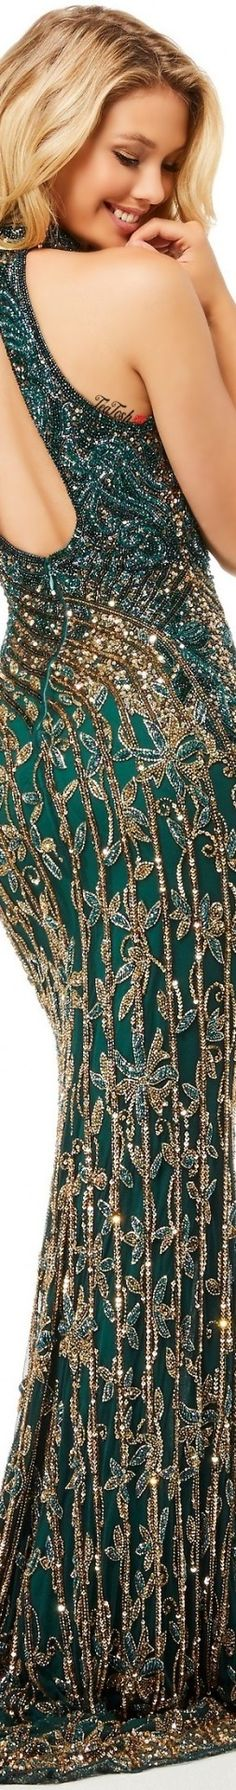 ❈Téa Tosh❈ Sherri Hill #SherriHill #teatosh Merry Christmas Friends, Forever Green, Sherri Hill, Green Fashion, Love And Light, Sensual, Beautiful Gowns, Shades Of Green, Green And Gold